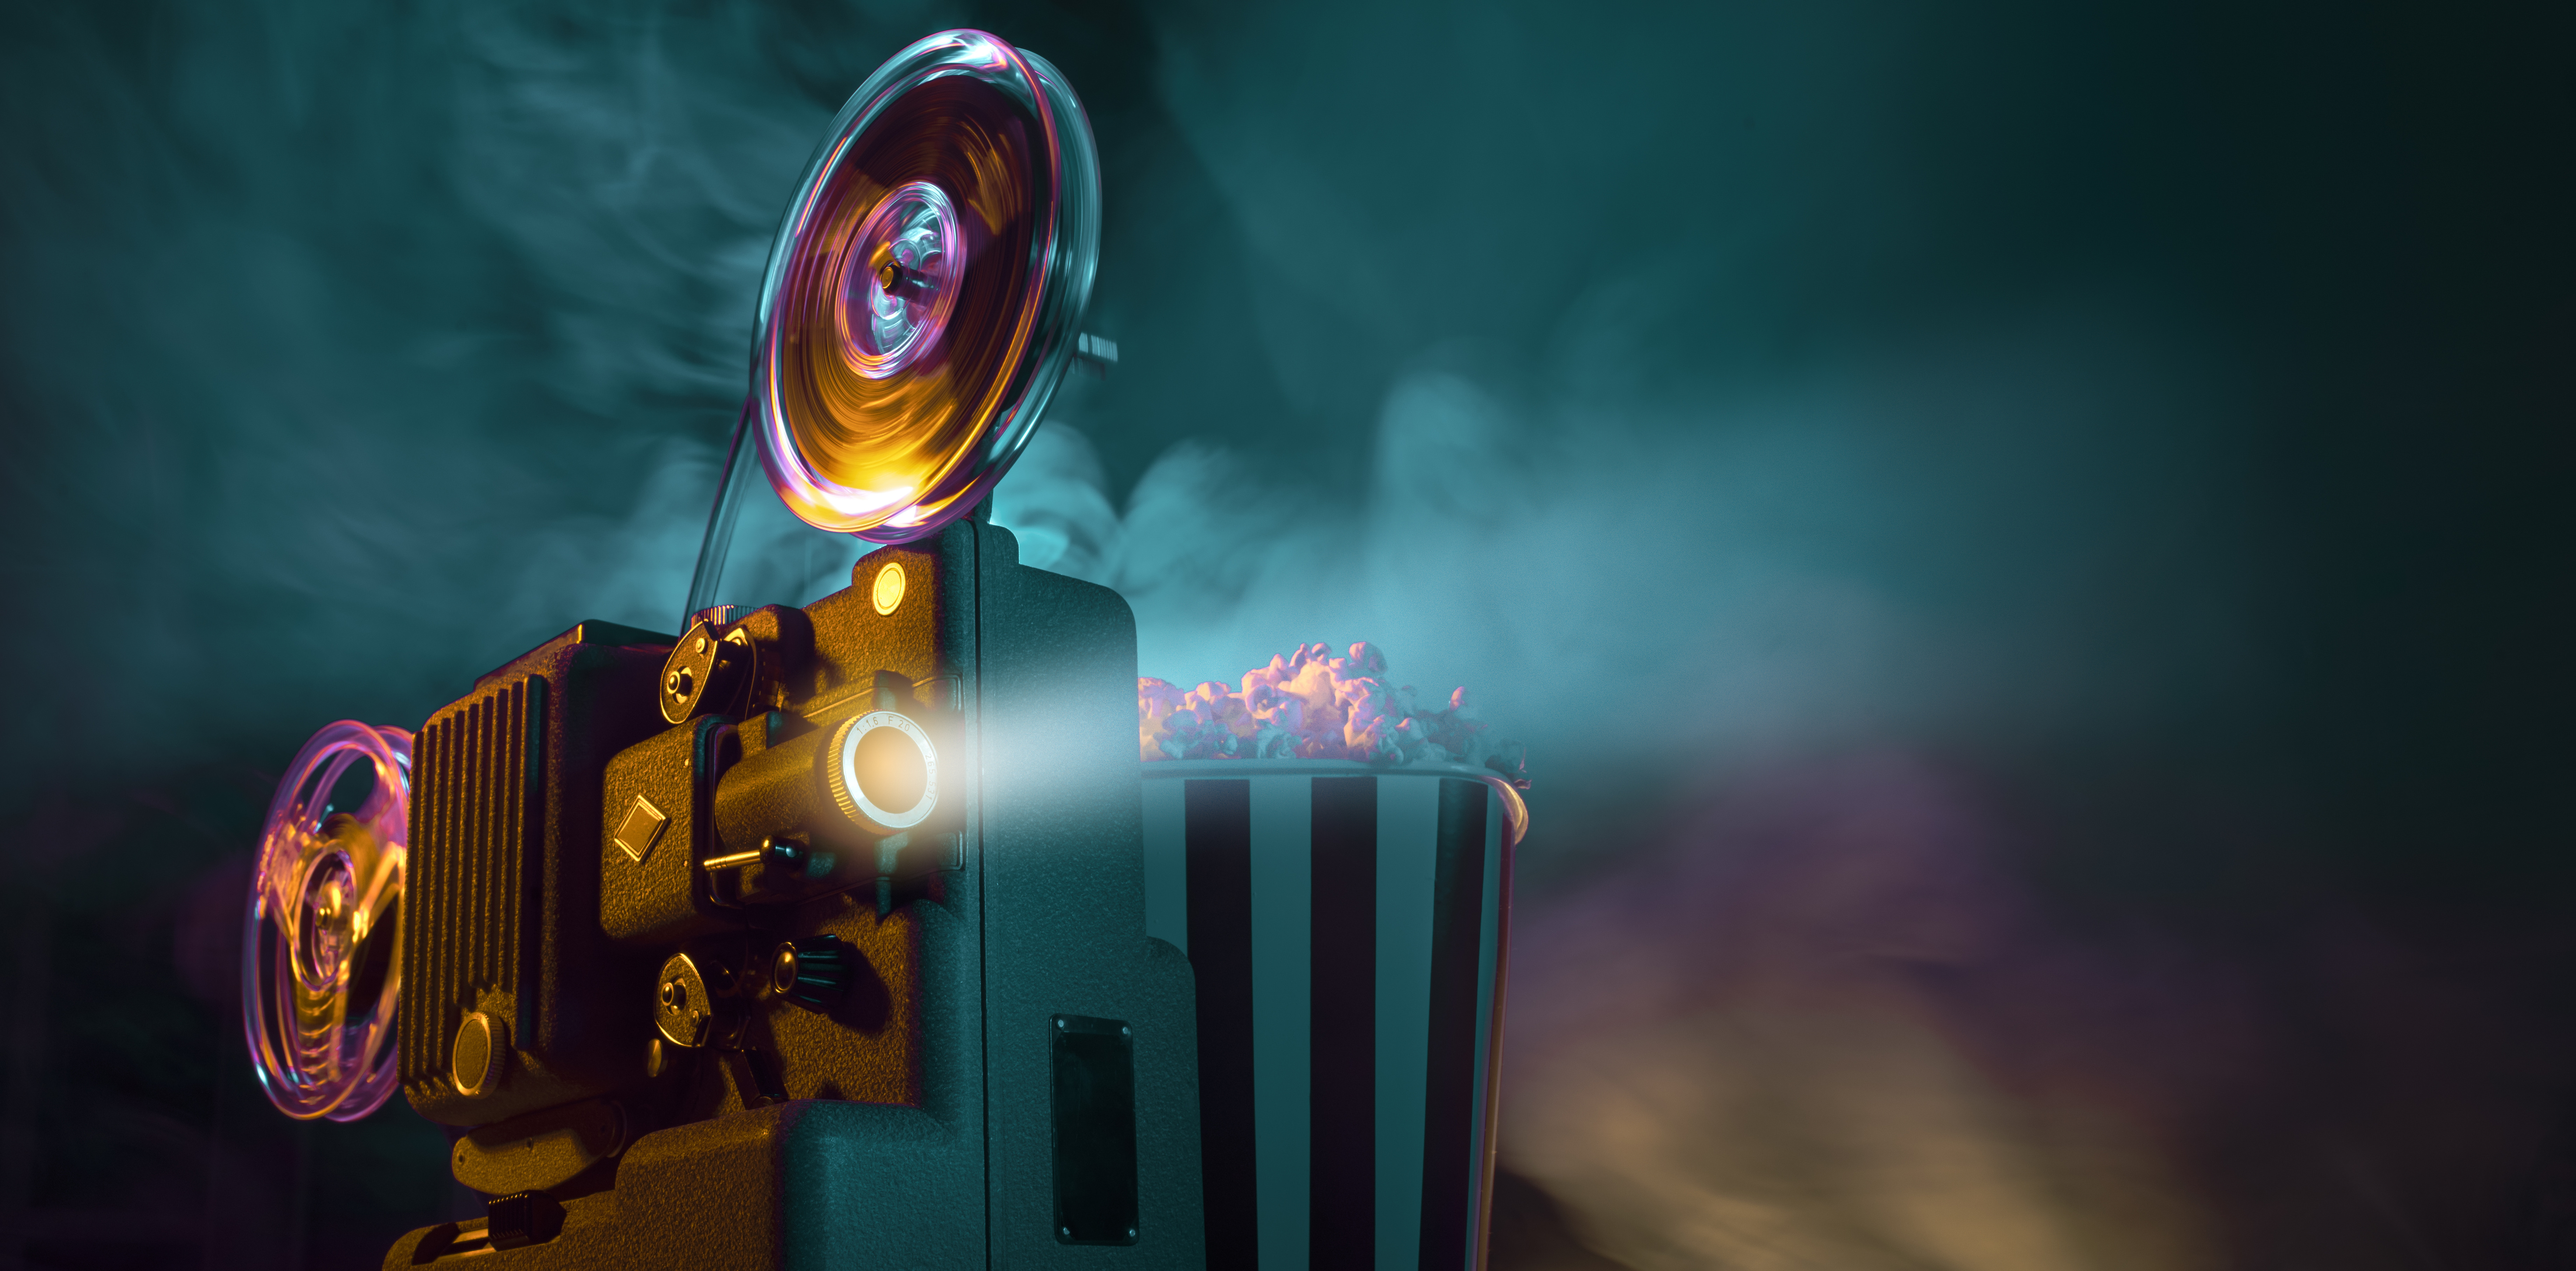 A vintage, neon movie projector is playing with a full popcorn bucket to the right and a light cloud of smoke surrounding it.